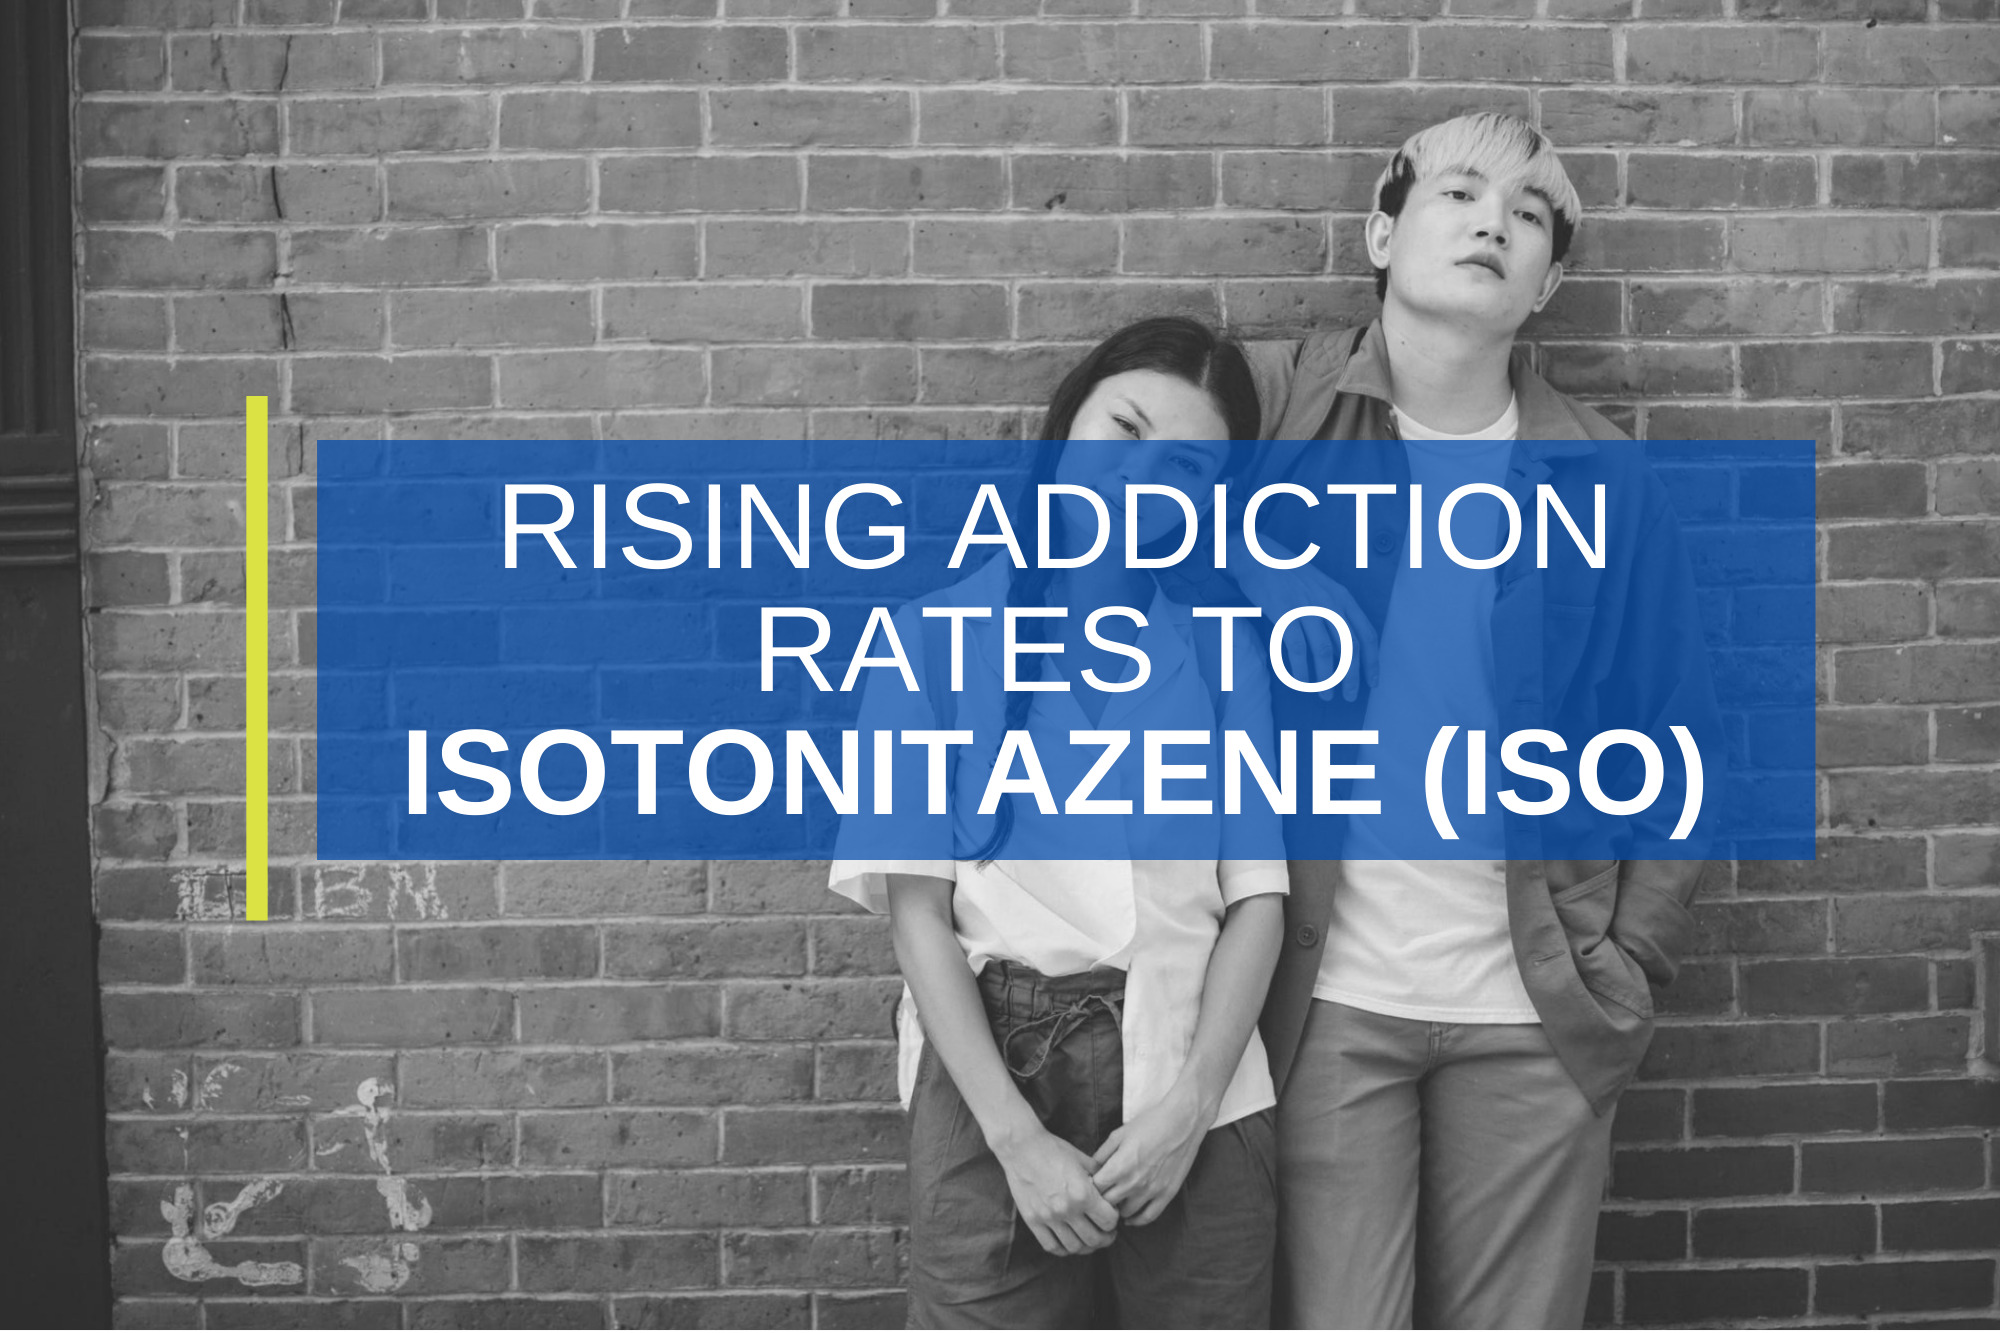 isotonitazene iso addiction